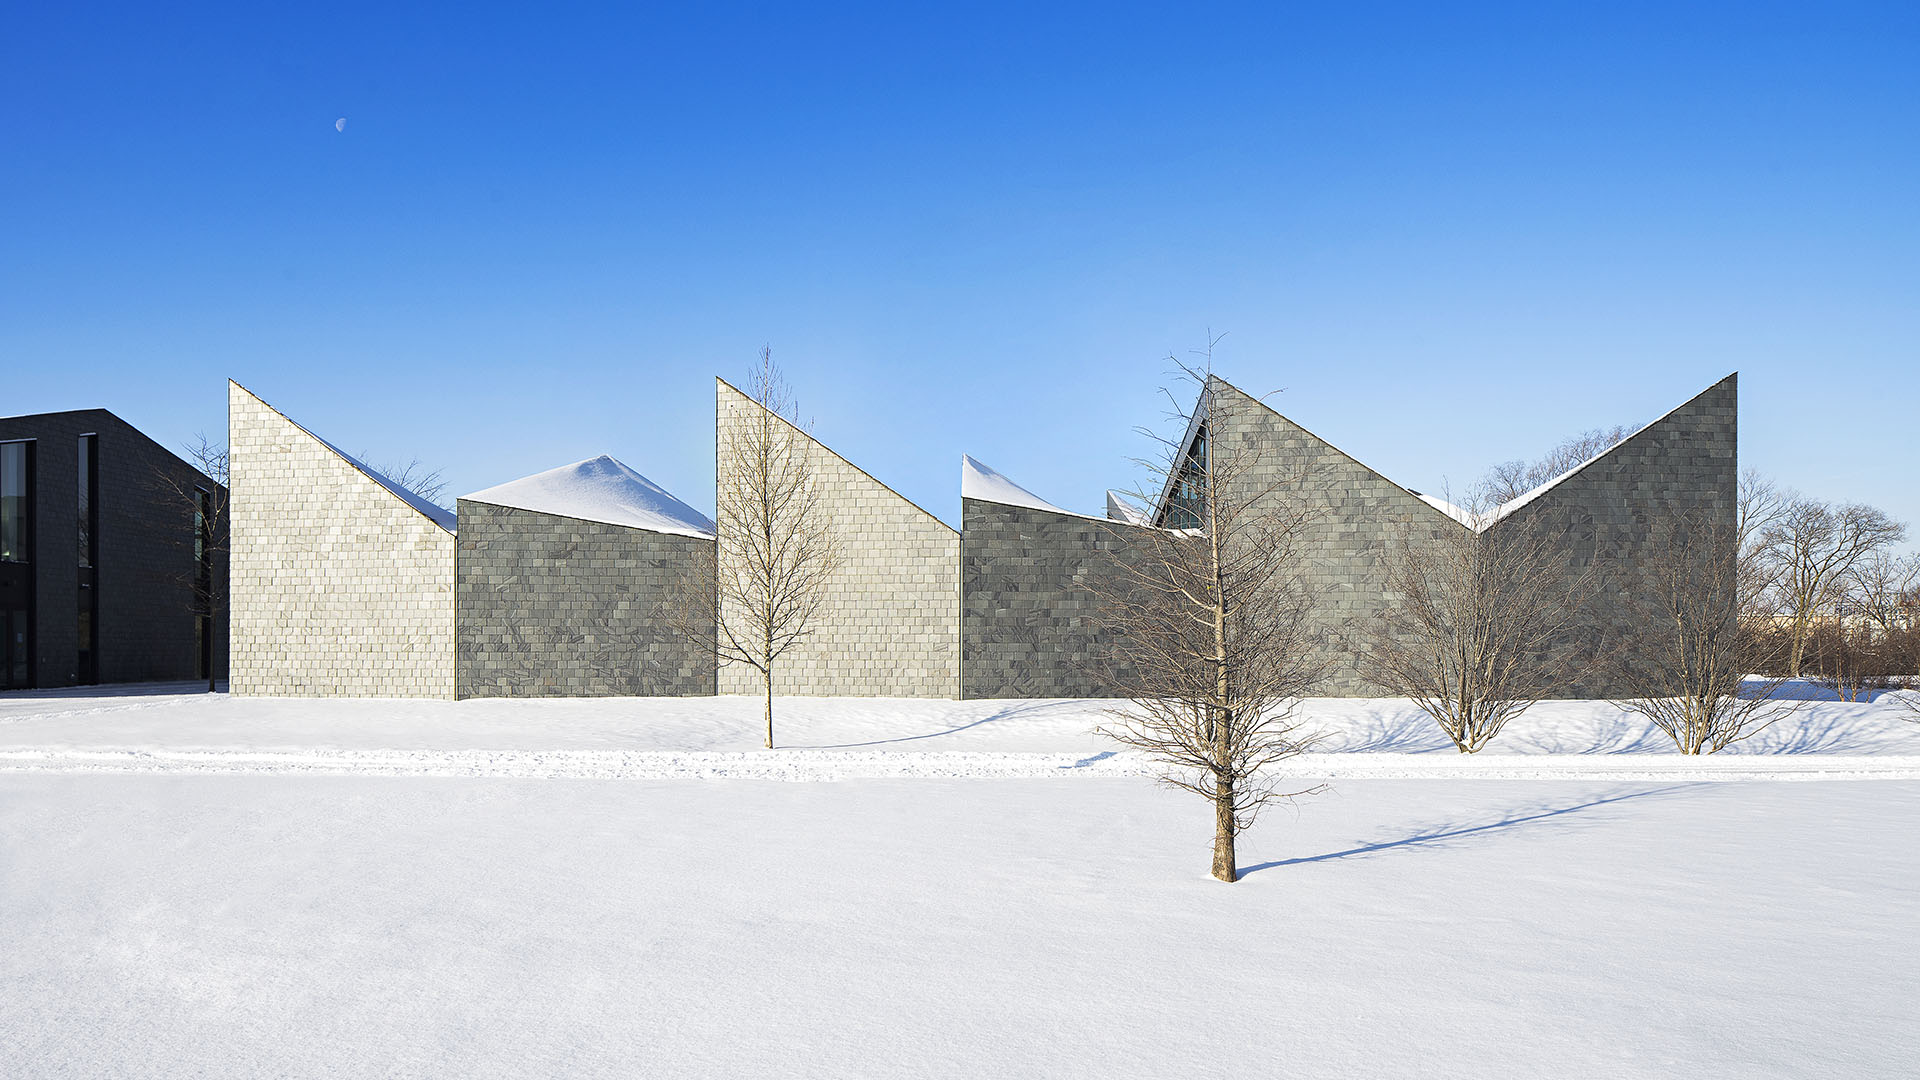 Photographing architecture in winter | Photofocus